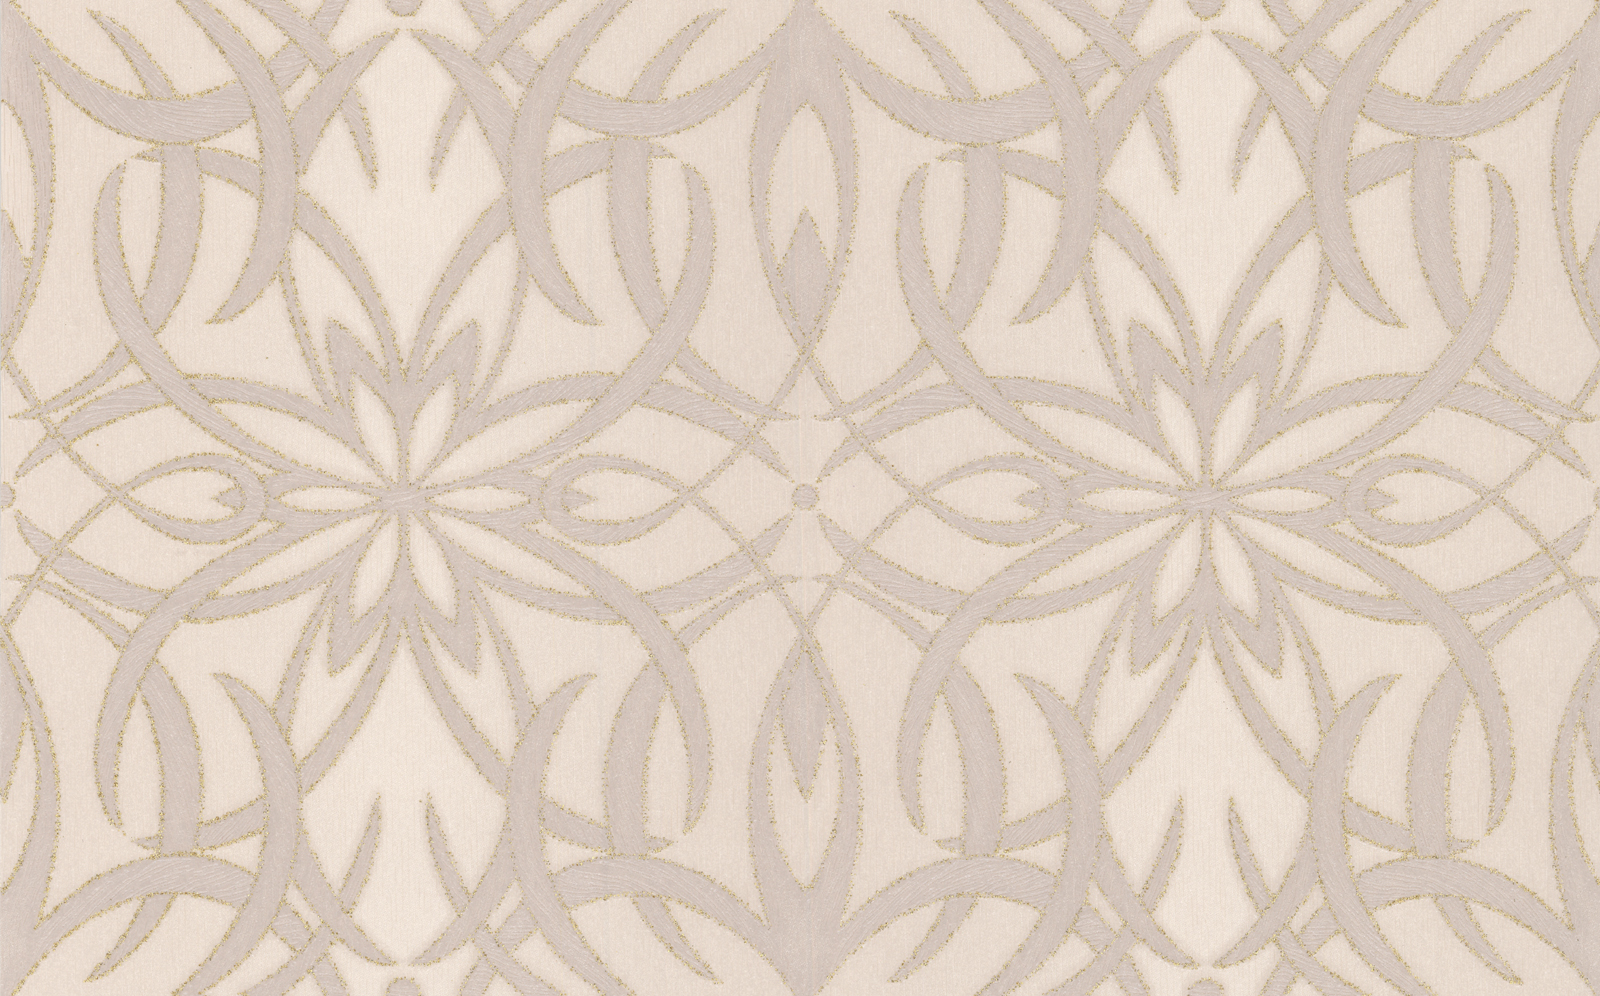 Home Wallpaper Pattern brilliant home wallpaper pattern name faux commercial shiny gold